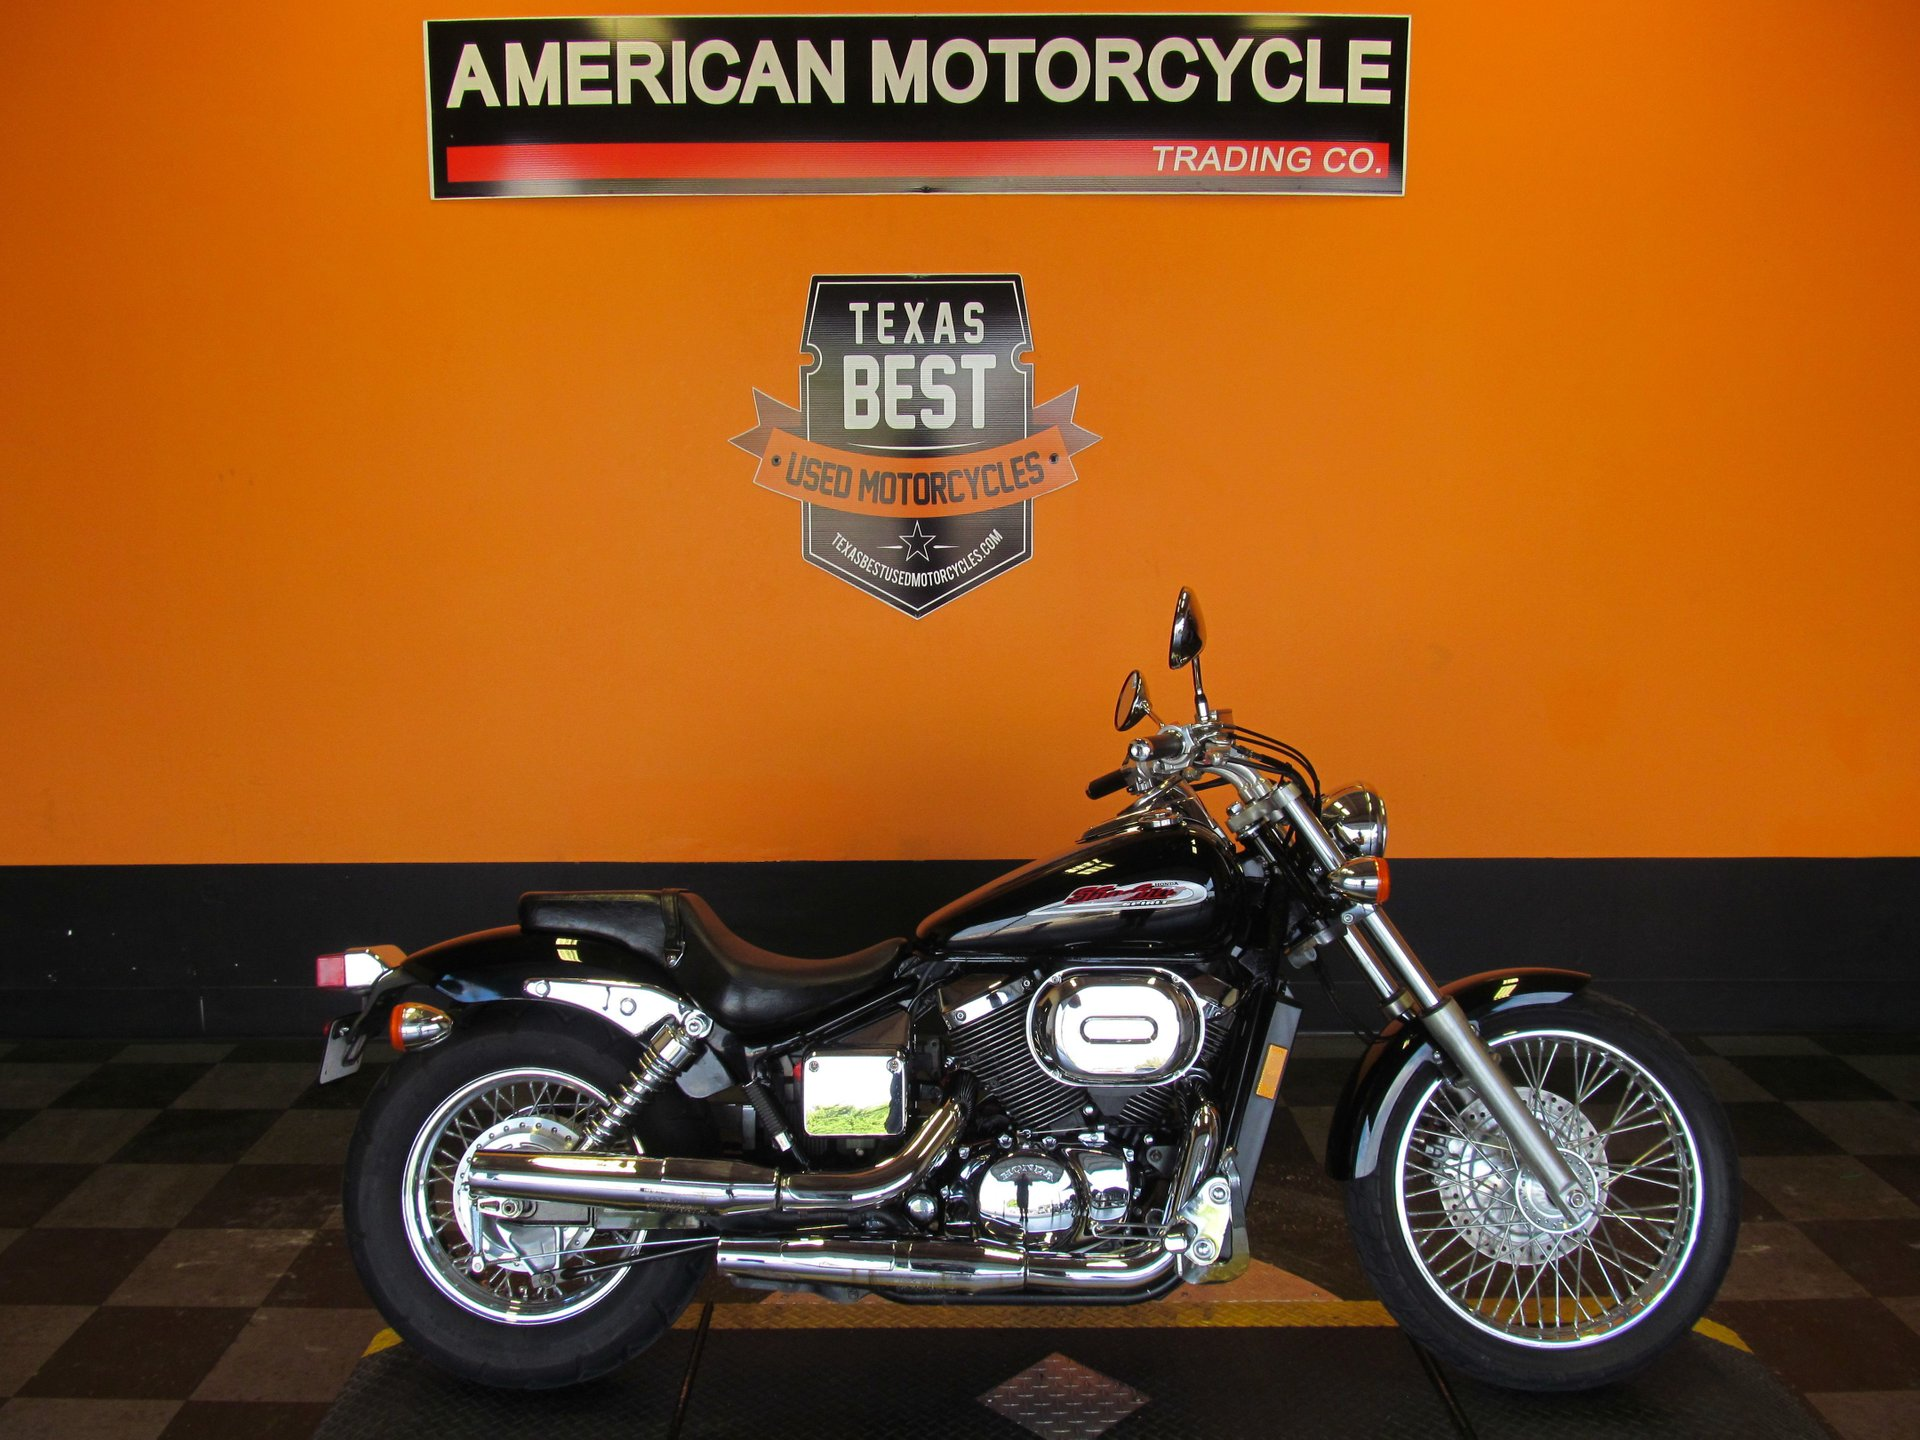 2001 honda shadow spirit vt750dc